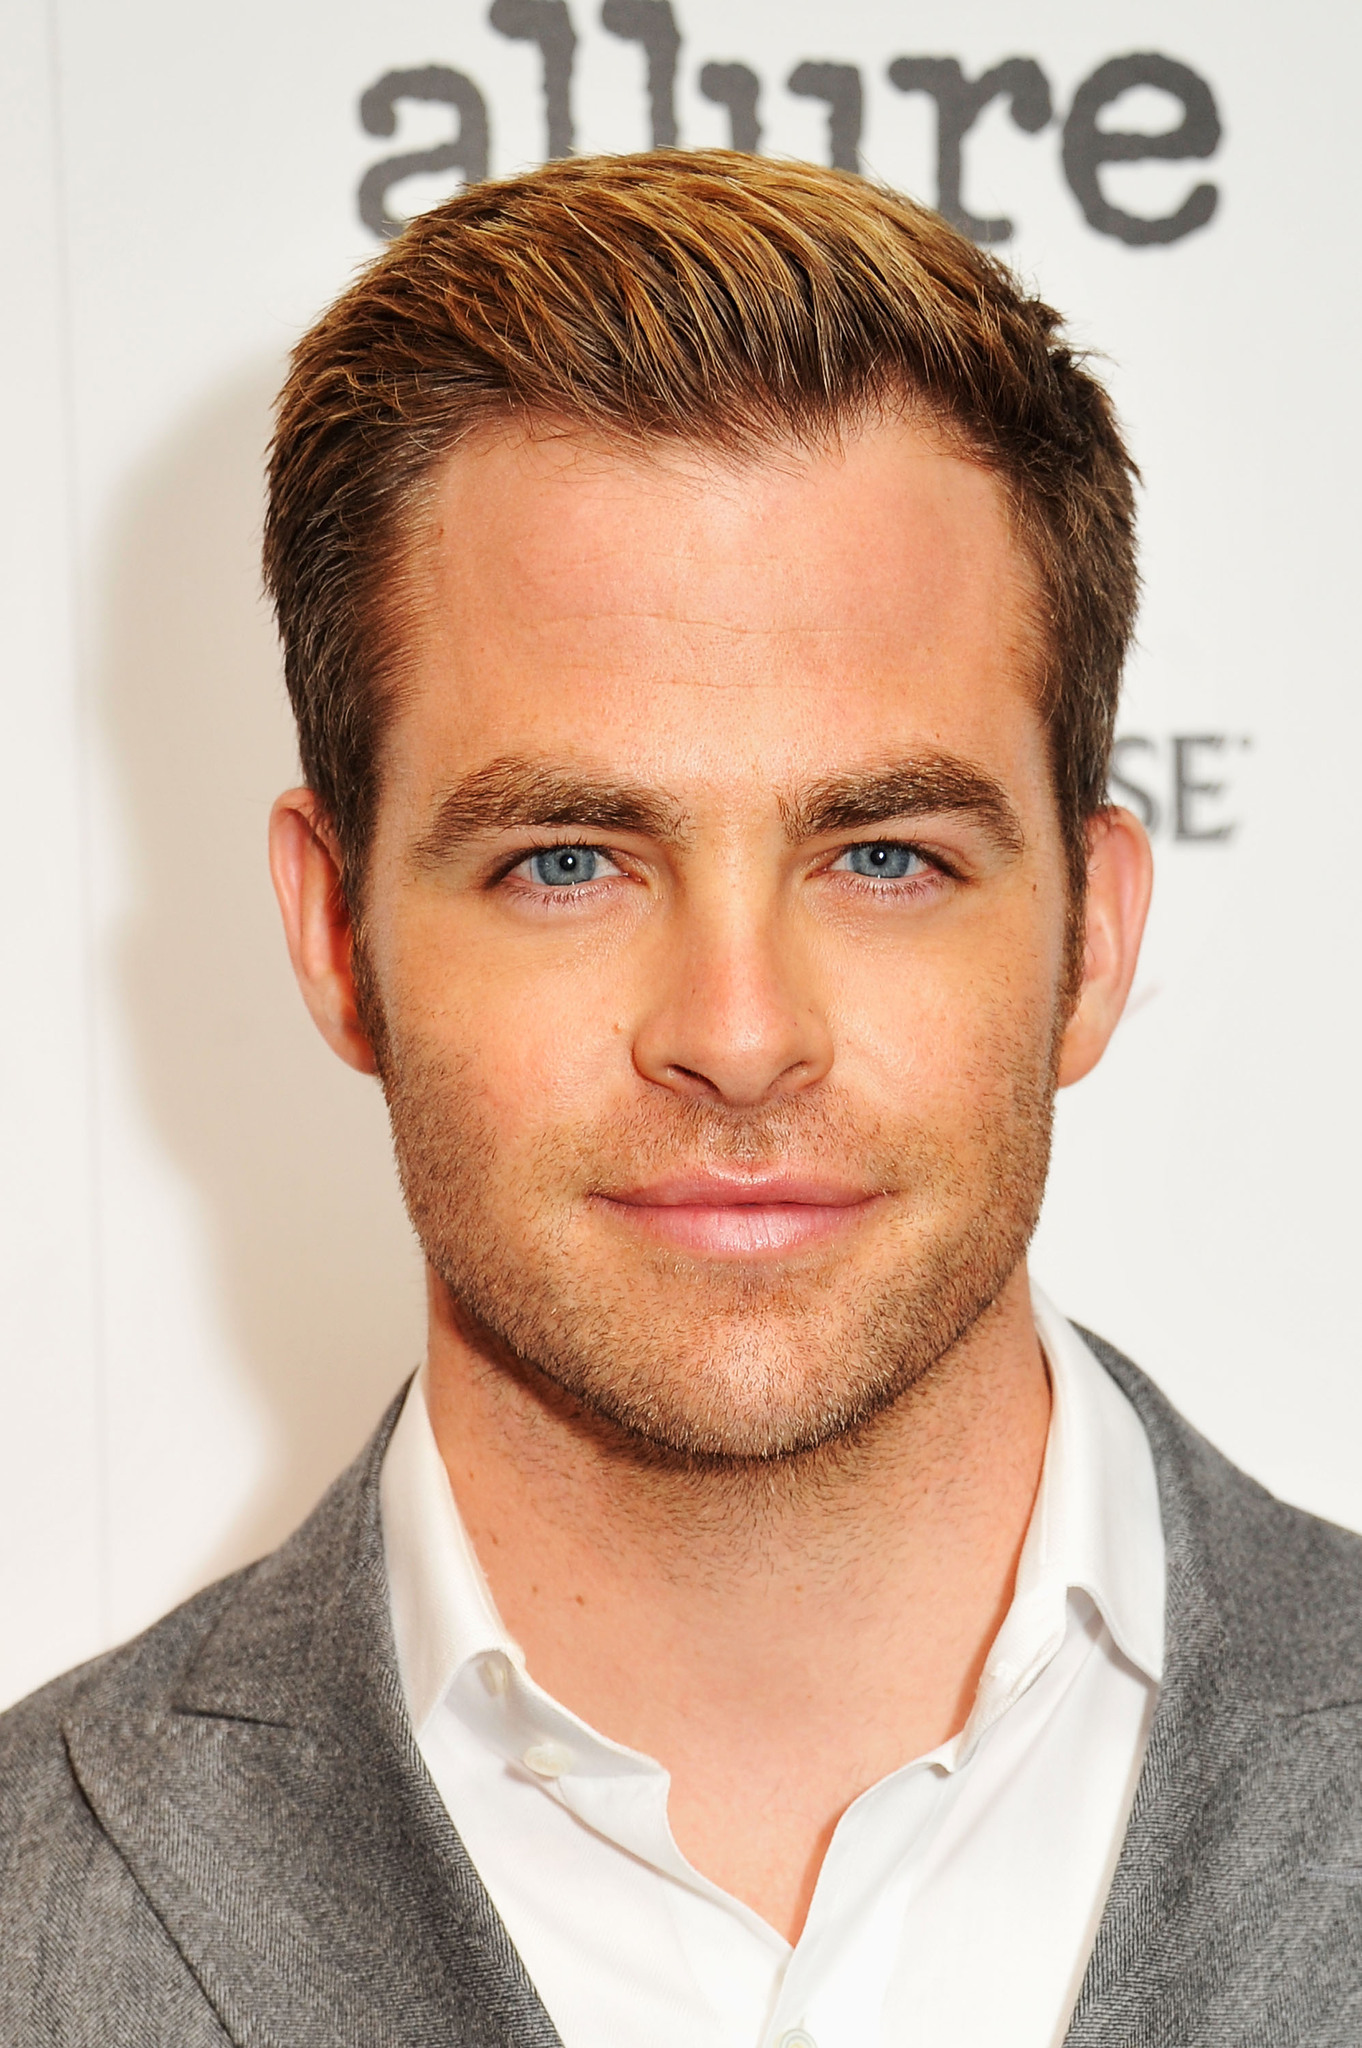 Chris Pine at an event for People Like Us (2012)